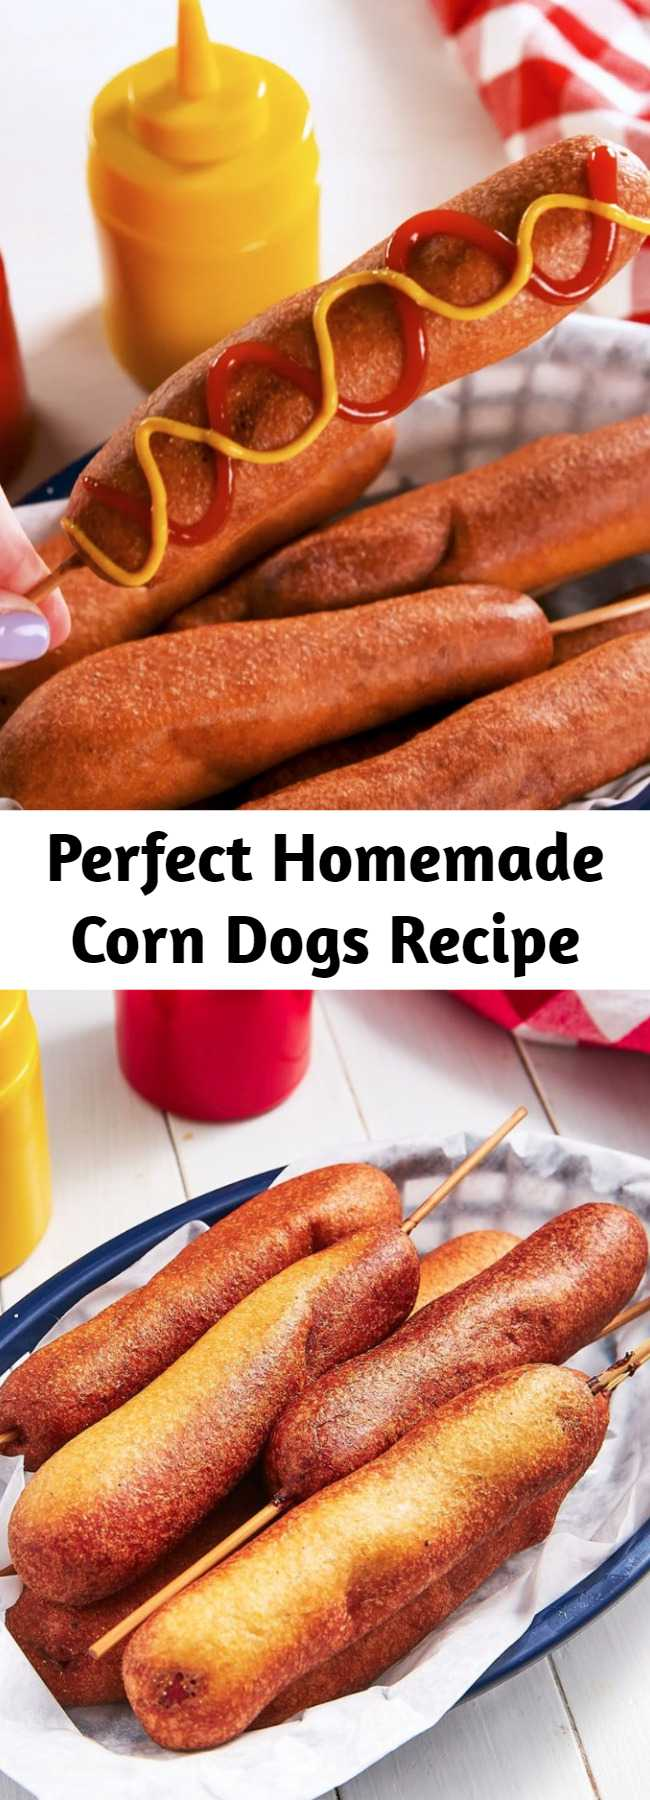 Perfect Homemade Corn Dogs Recipe - No one can deny the crispy, slightly sweet, perfectly fried lure of a corn dog. A corn dog and a giant funnel cake and we are all set. Luckily, both are actually super easy to make at home and a corn dog comes together in no time flat. The batter fries up quickly and perfectly crispy for the best corn dog ever. SOOOO much better than the boxed kind. #easy #recipe #corndog #hotdog #fried #golden #homemade #fromscratch #buttermilk